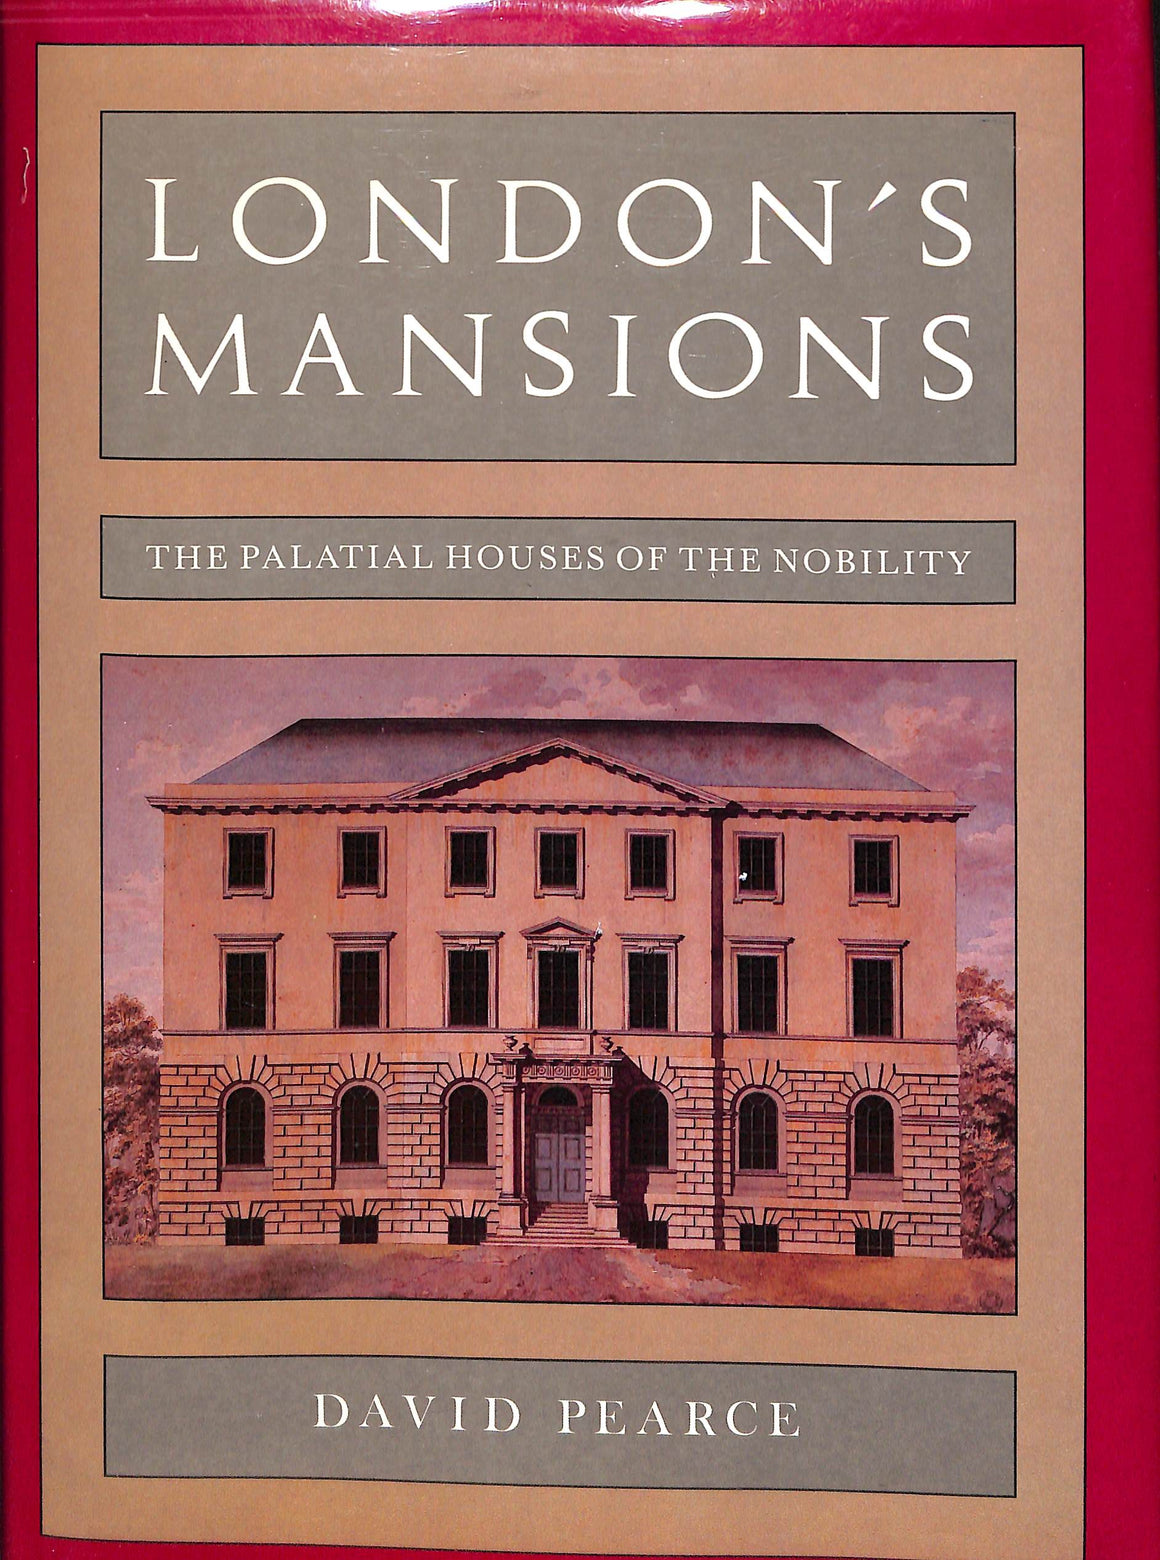 London's Mansions: The Palatial Houses of The Nobility by David Pearce